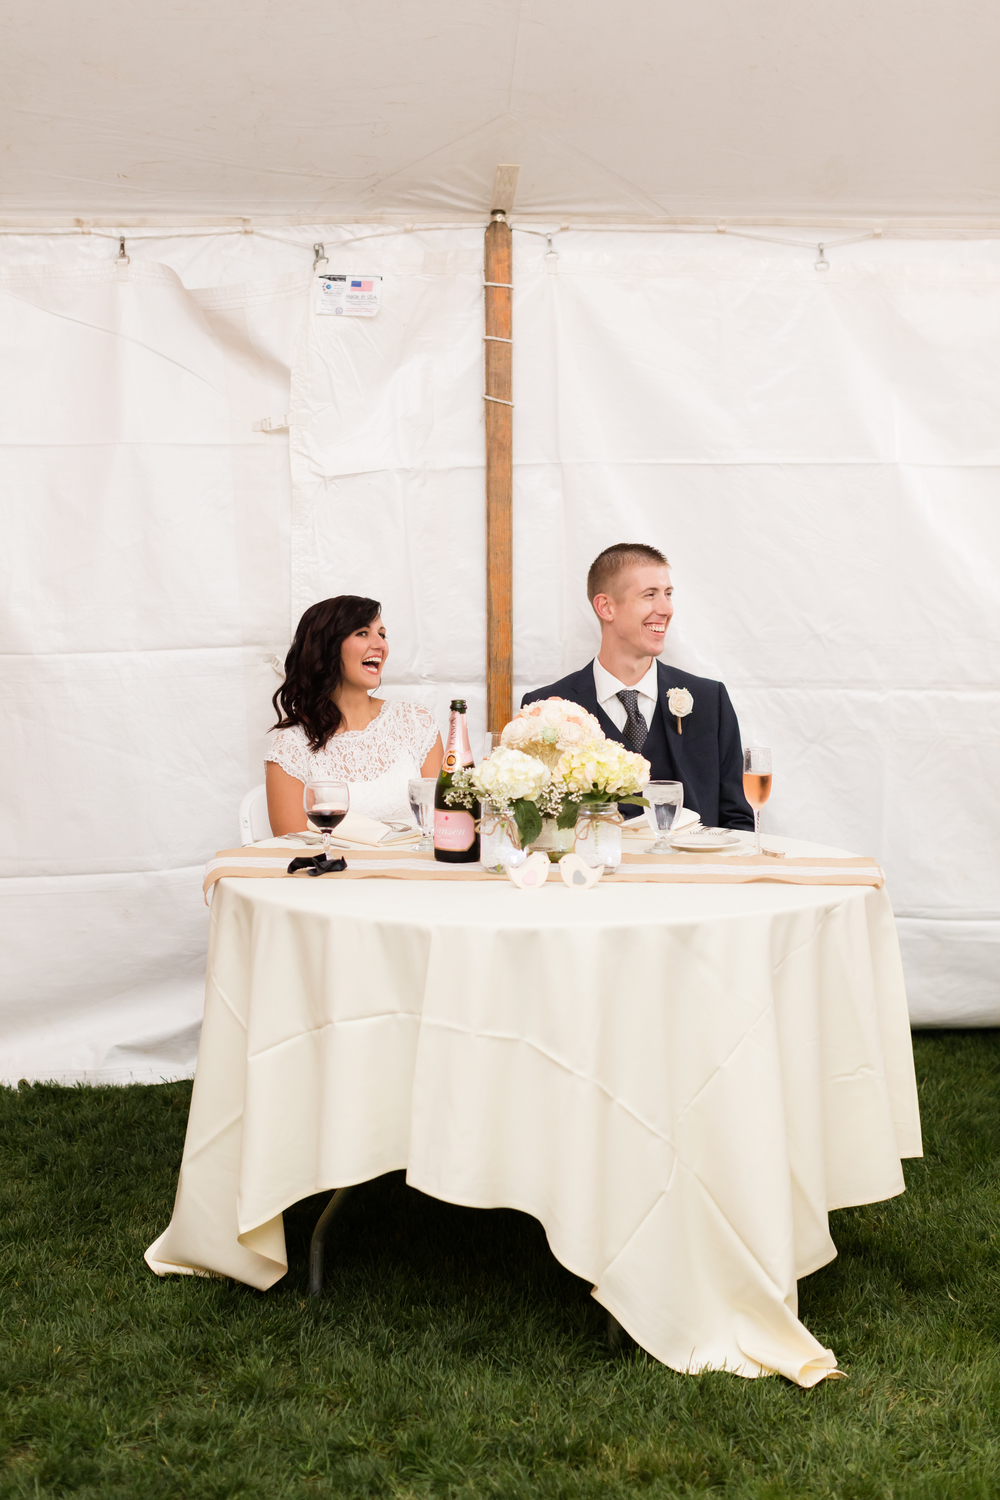 Round sweetheart table rental